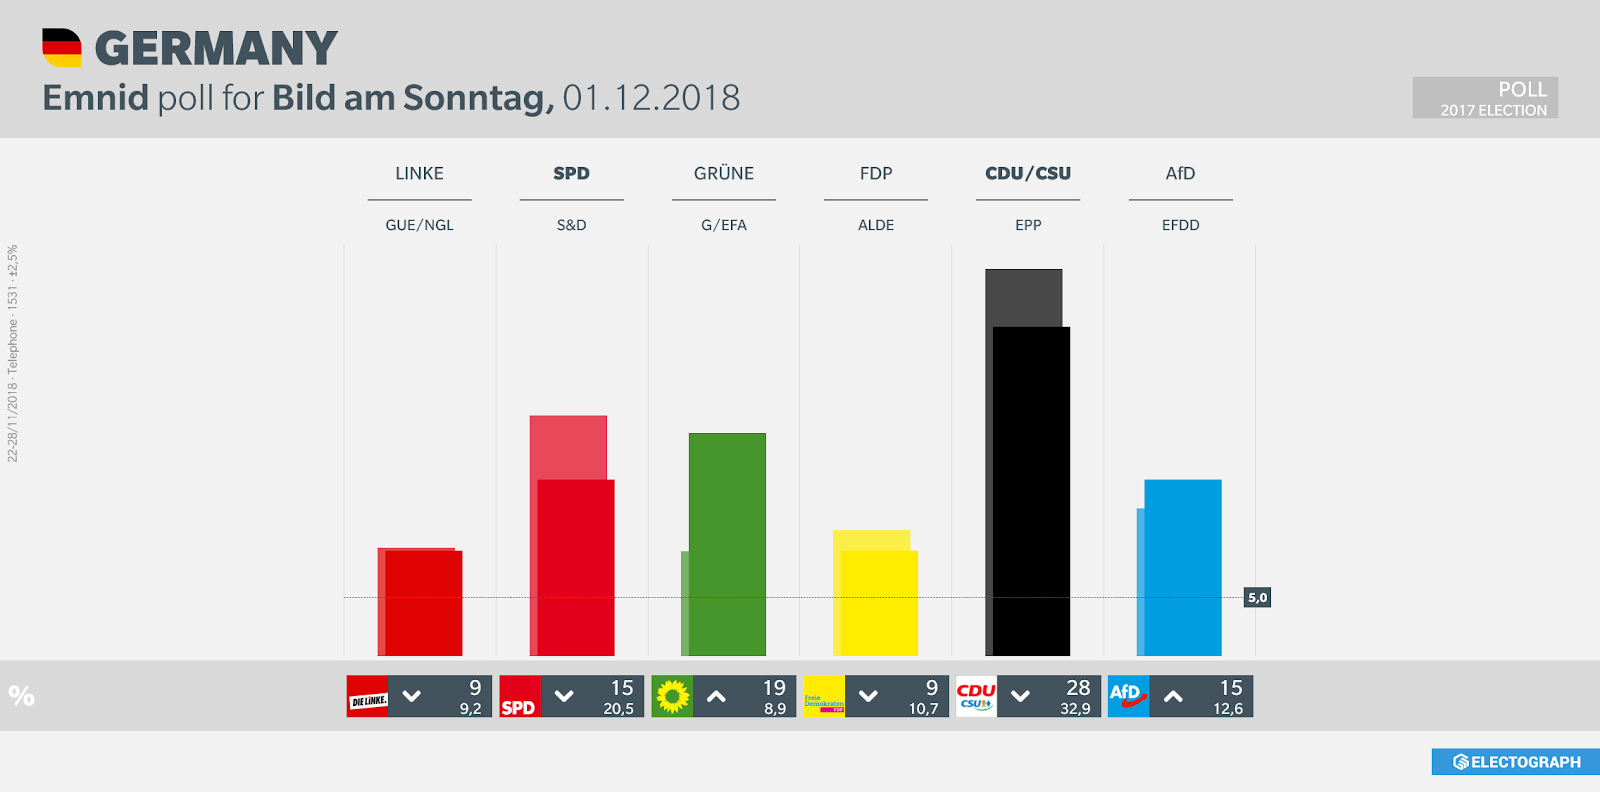 GERMANY: Emnid poll chart for Bild am Sonntag, 1 December 2018